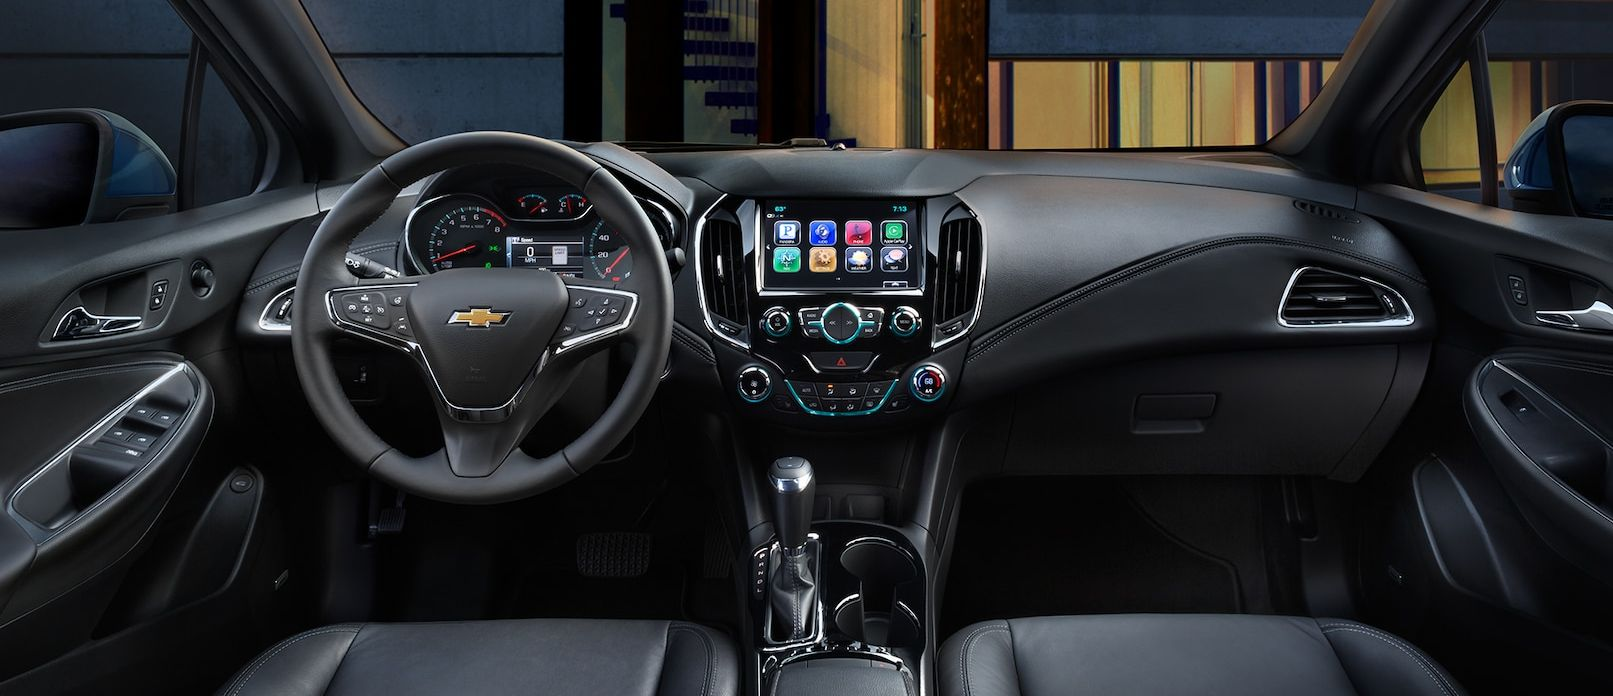 Tech-Loaded Interior of the 2018 Chevy Cruze